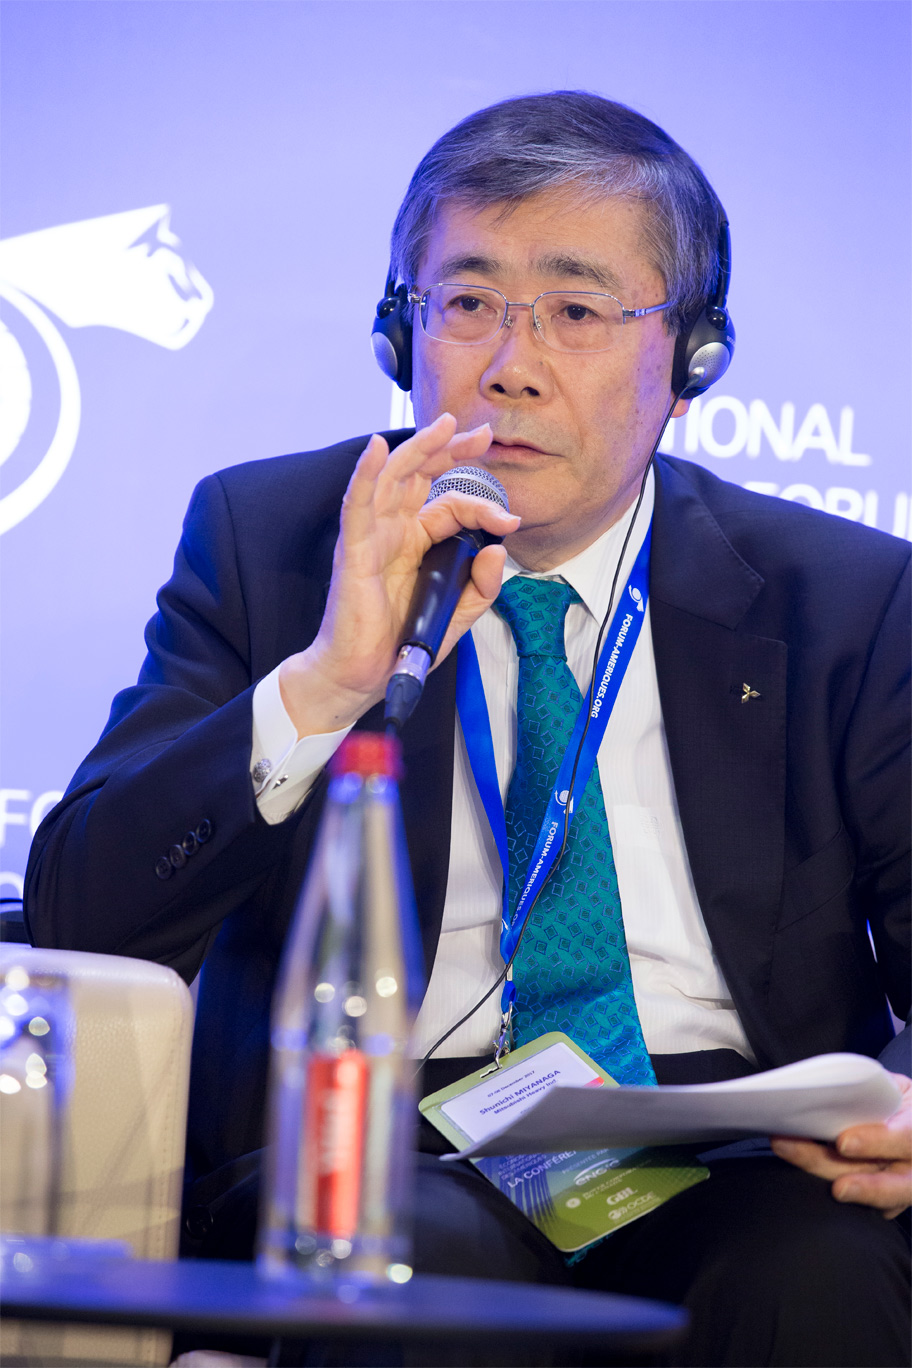 Shunichi Miyanaga President and Chief Executive Officer, Mitsubishi Heavy Industries - Conference of Paris 2017